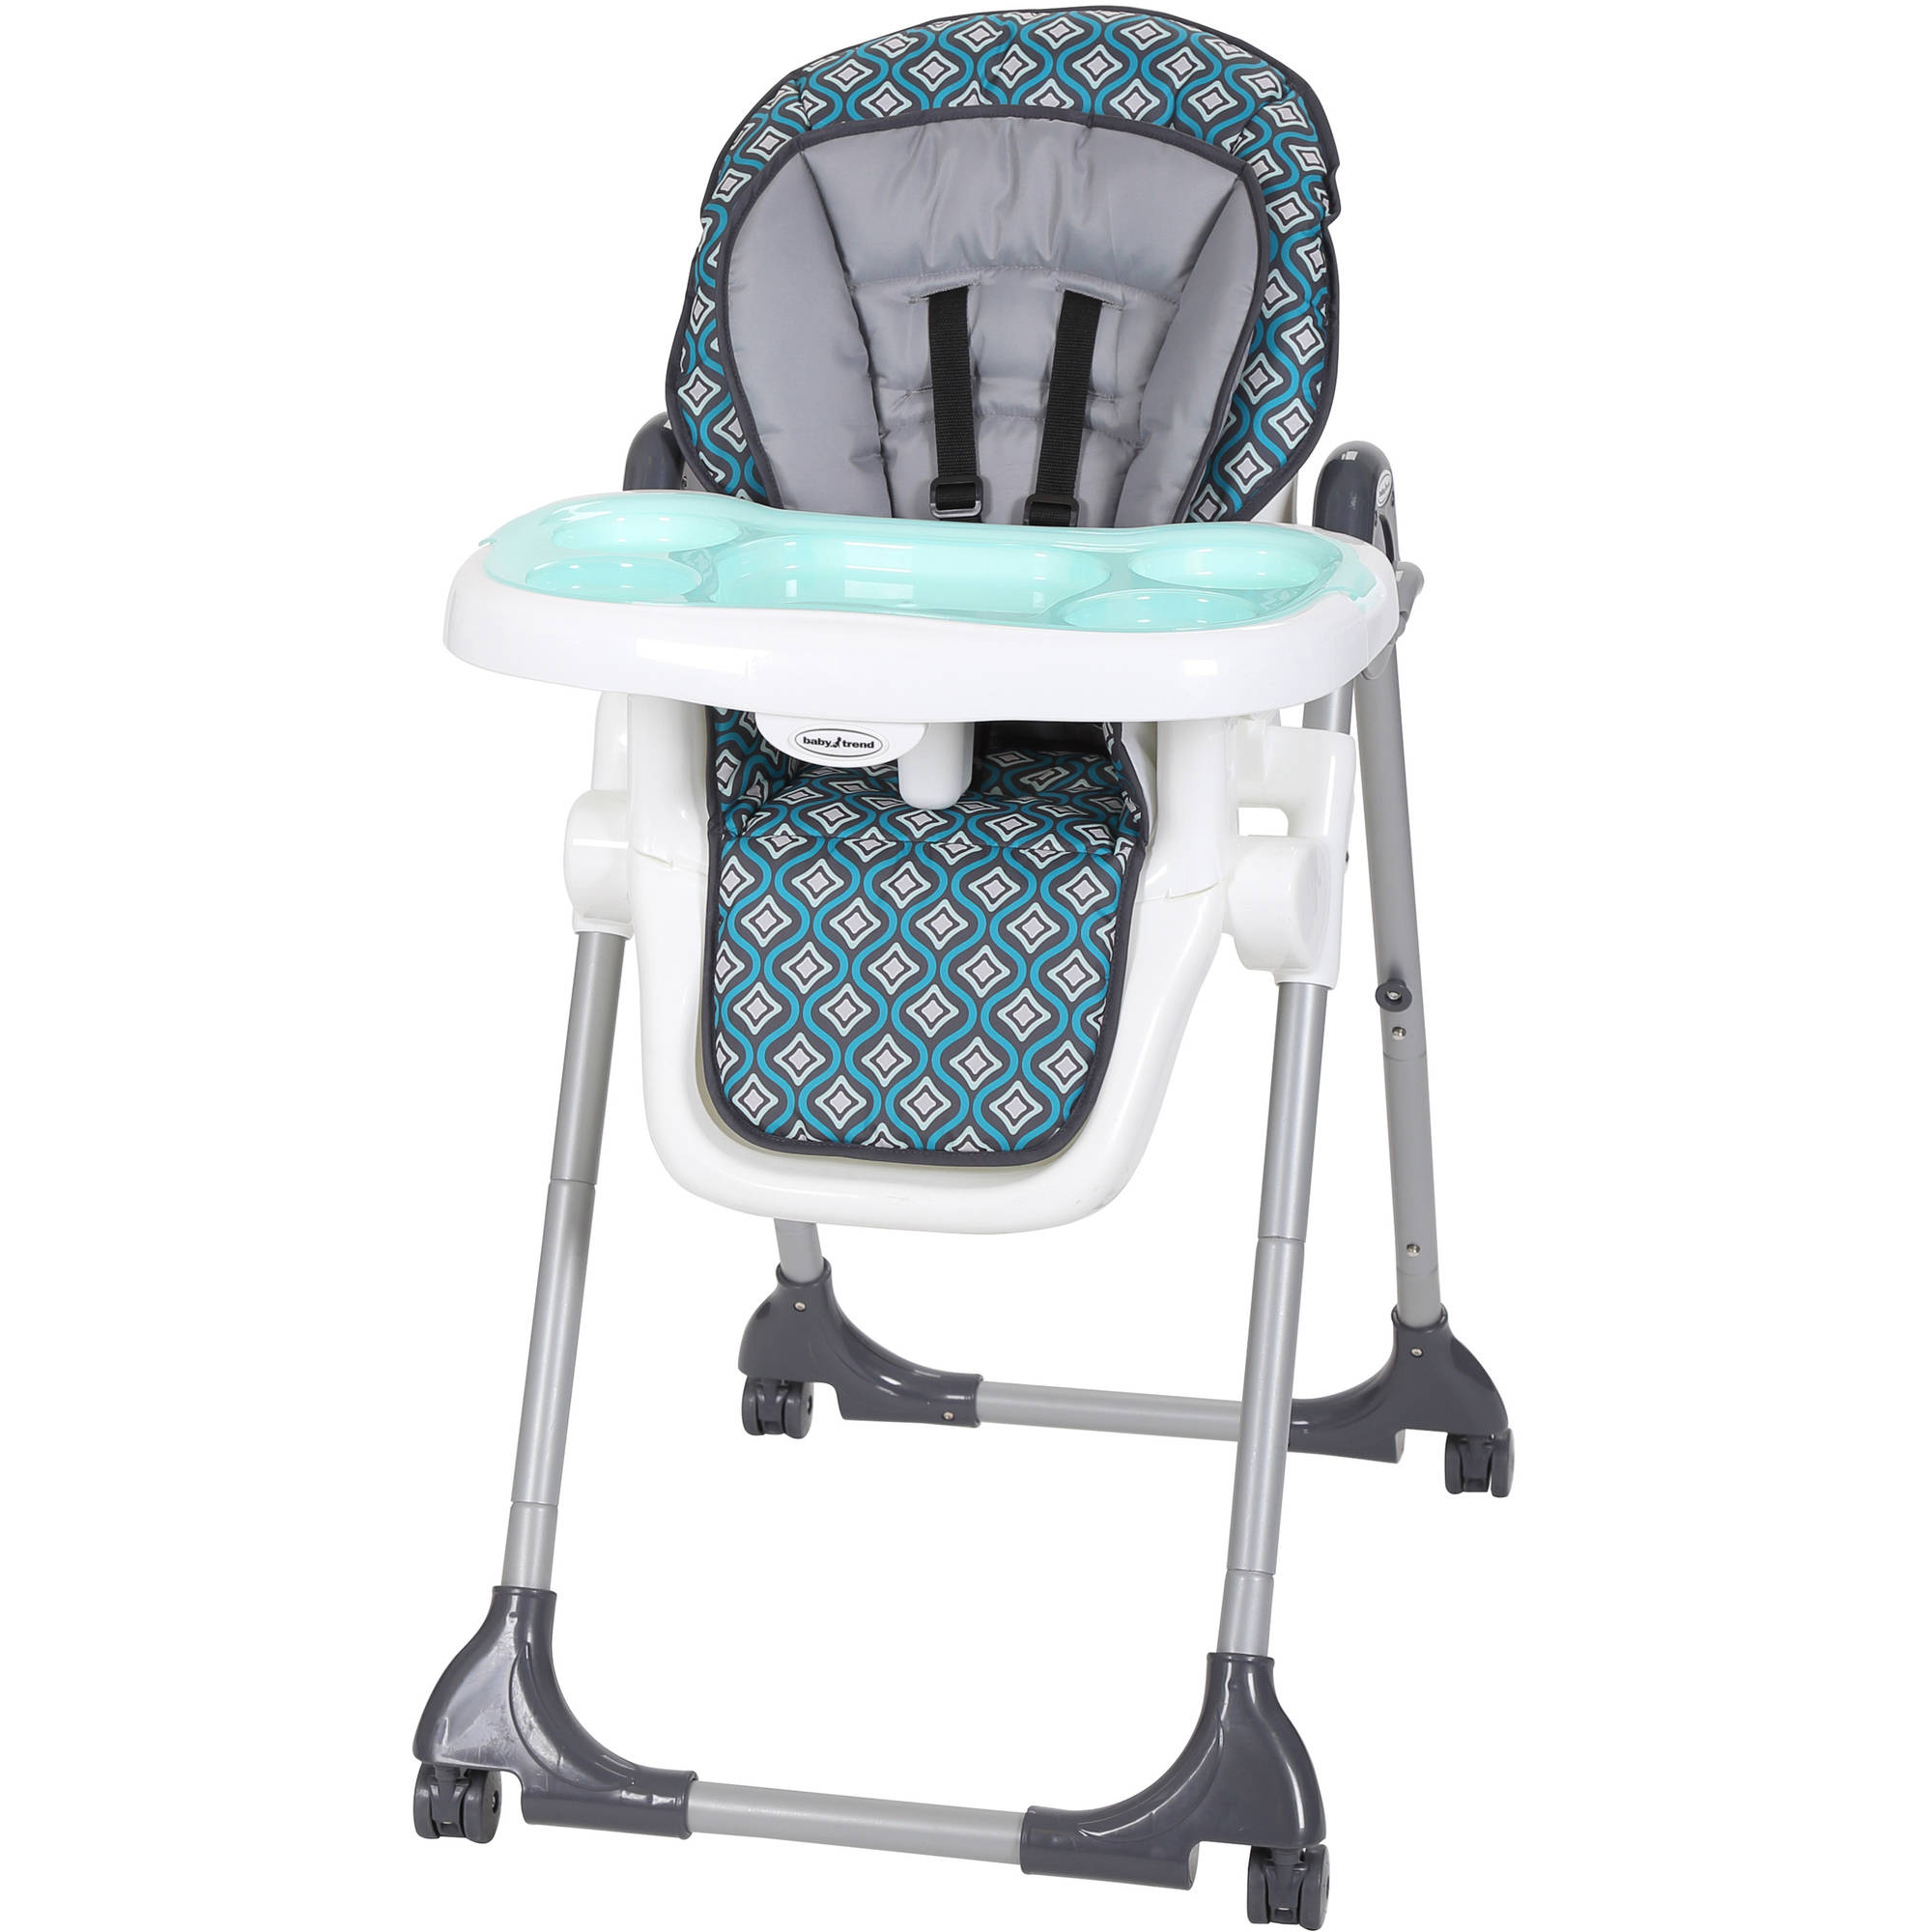 Graco Mealtime Highchair Walmart